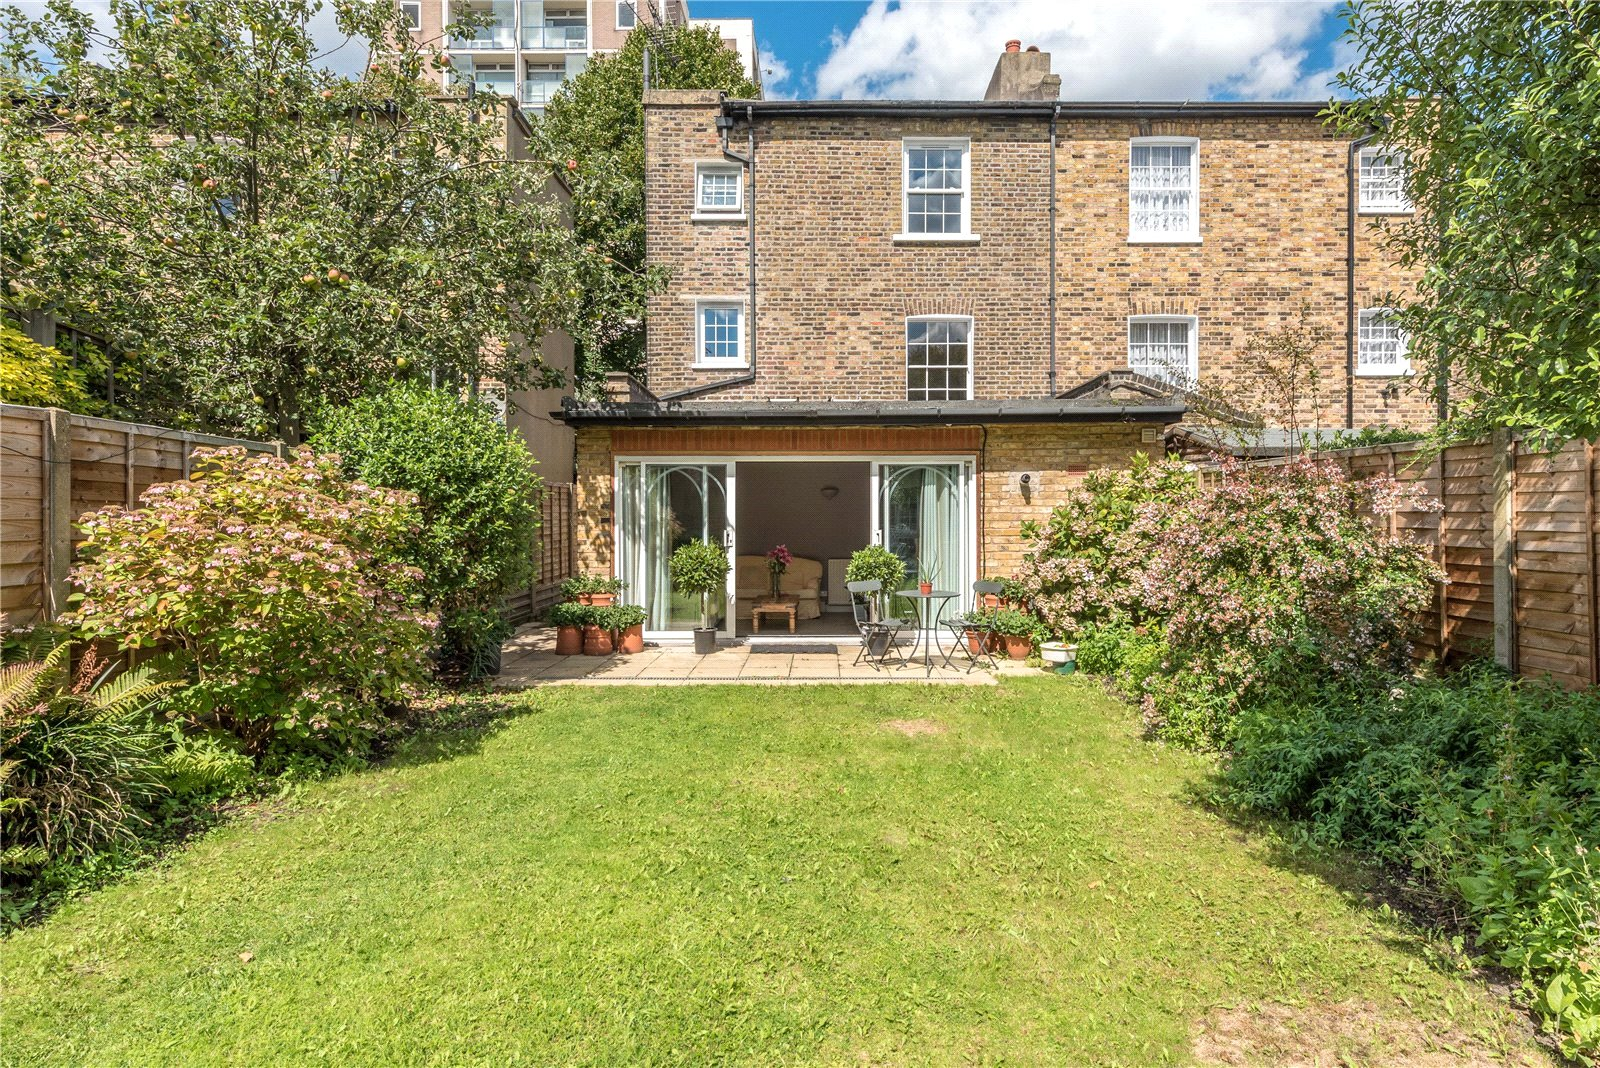 4 Bedrooms Semi Detached House for sale in Buckingham Road Islington London N1